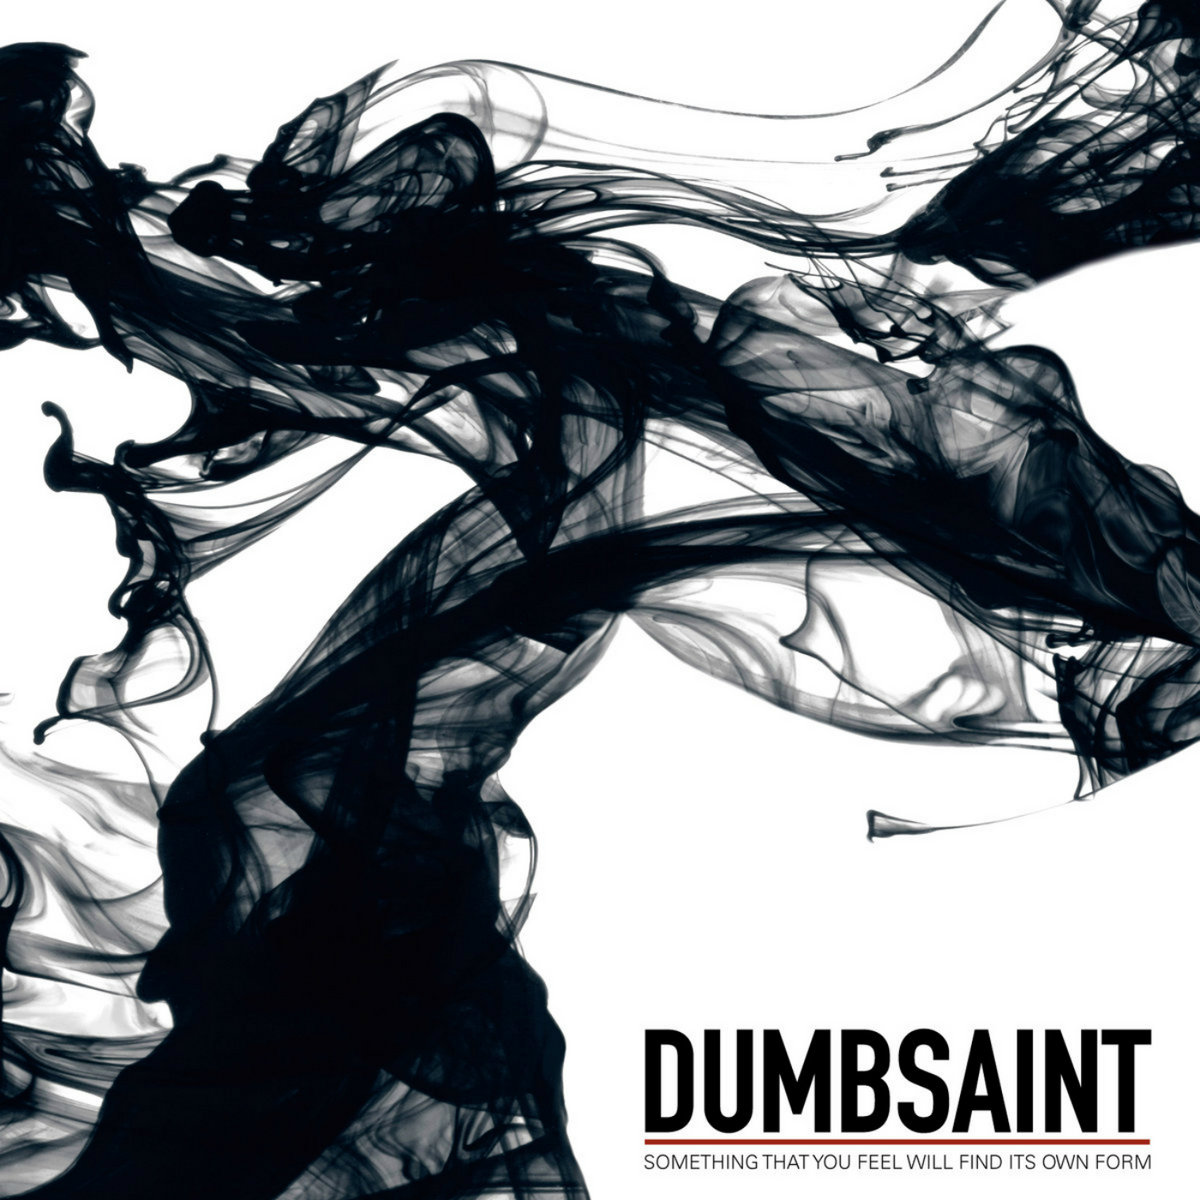 Dumbsaint - Something That You Feel Will Find Its Own Form (Bird's Robe Records, 2012/2021)